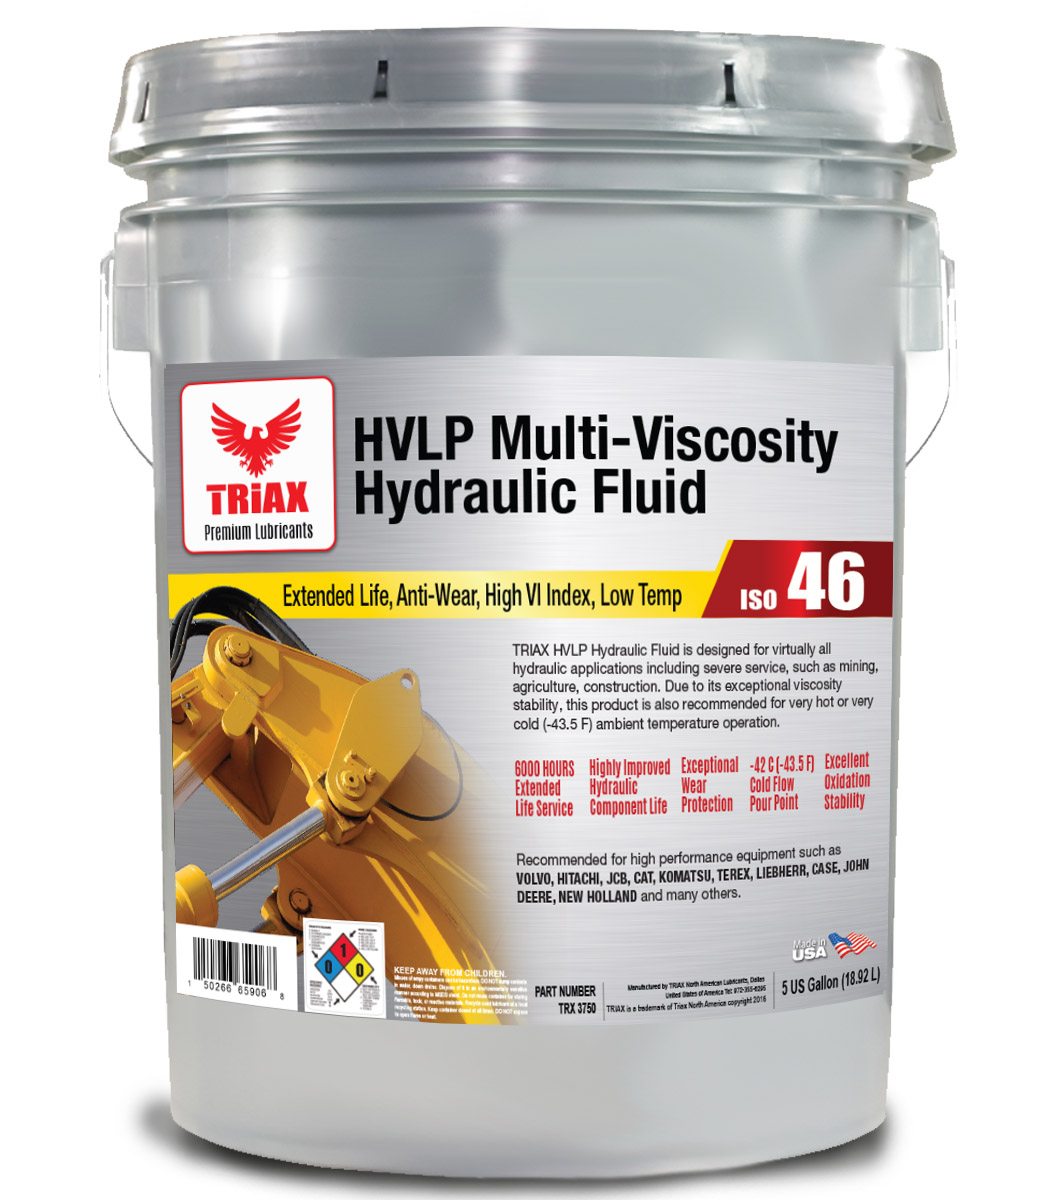 TRIAX Multi-Viscosity HVLP 46